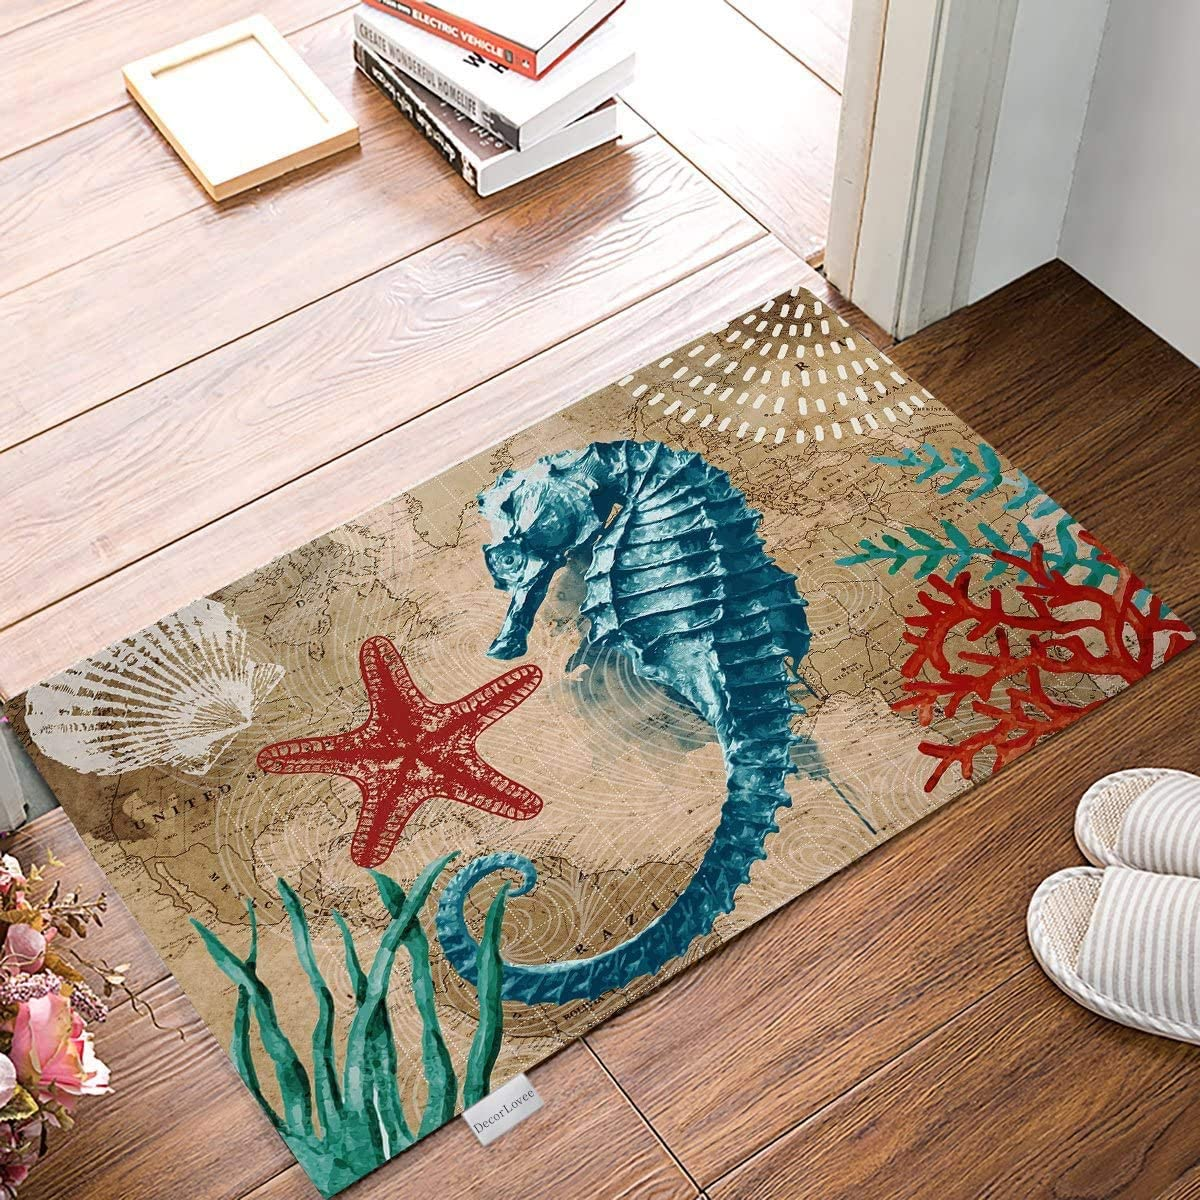 Doormats for Front Entrance Outside Patio Rug 18 x 30 Ocean Seahorse Starfish-Marine Life Theme Indoor Outdoor Bathroom Kitchen Bedroom Entryway Floor, Non-Slip Rubber